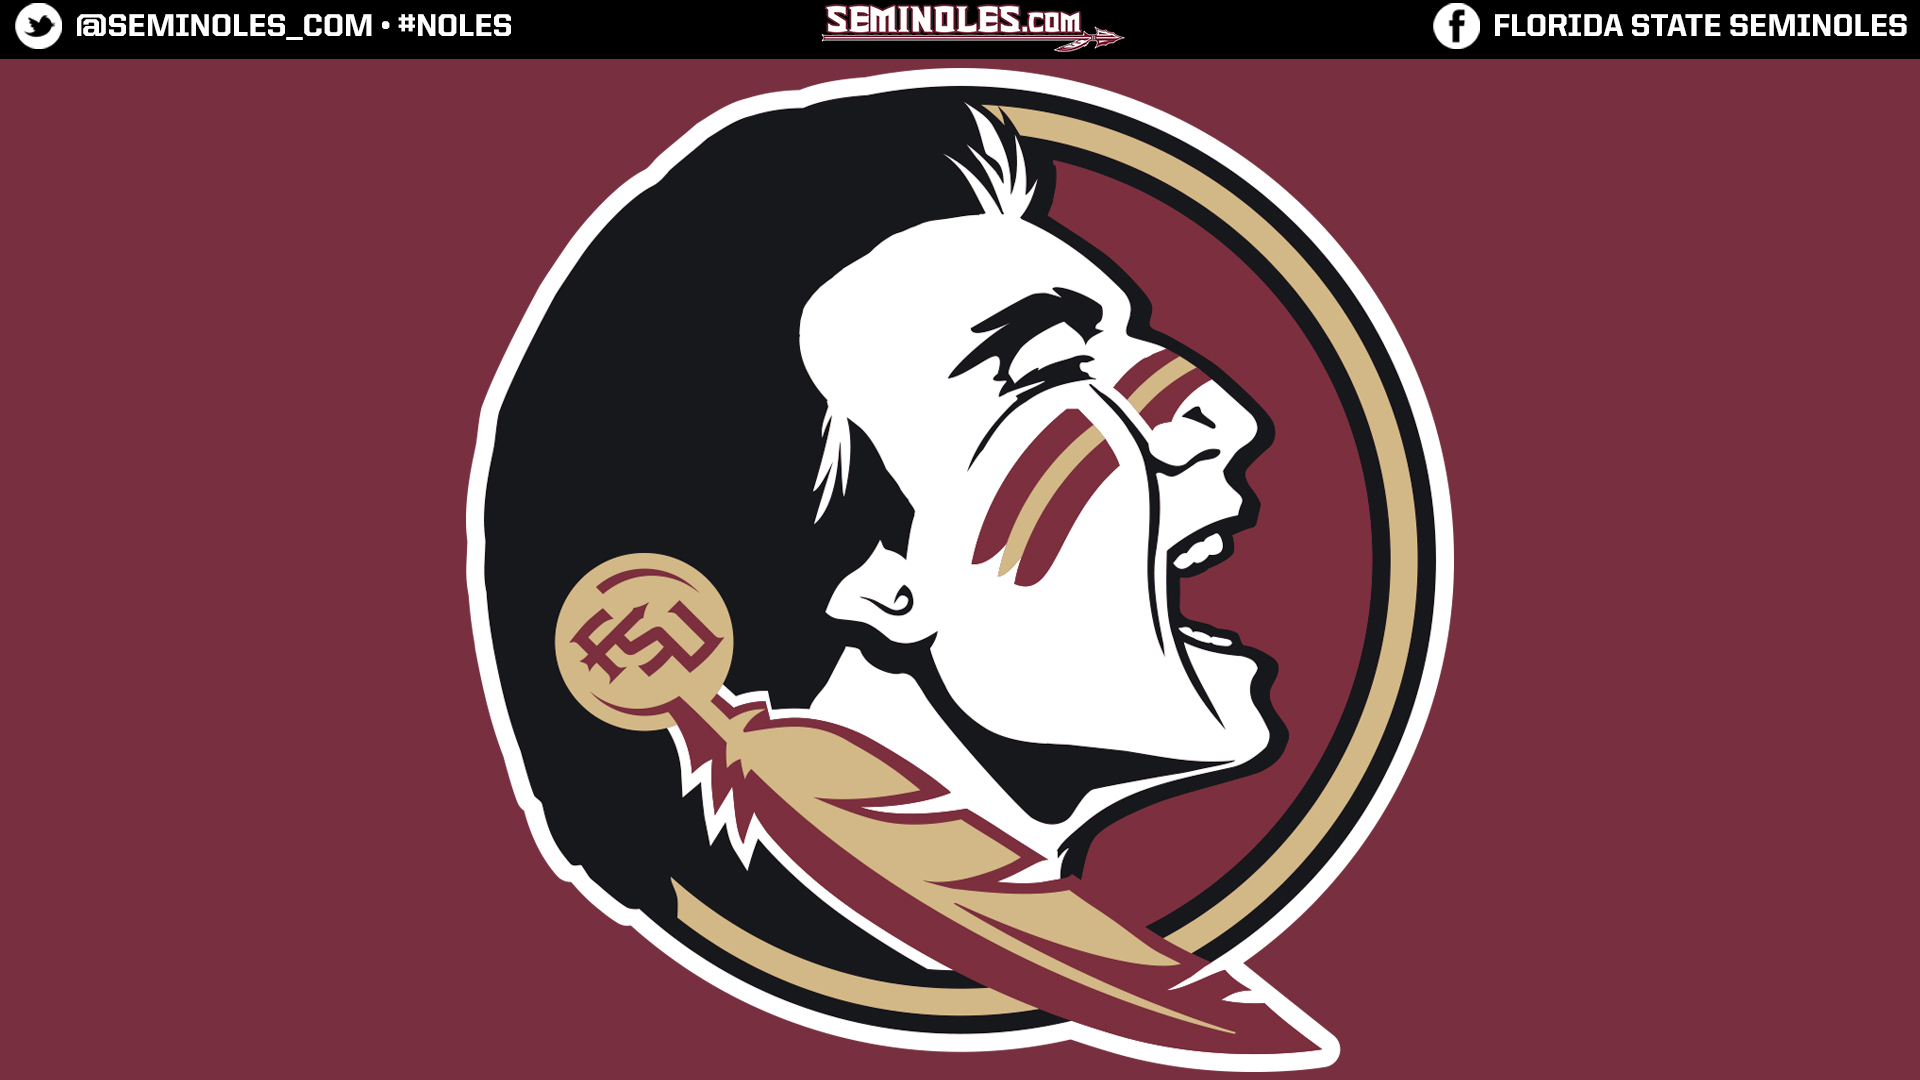 life on campus weve got the Florida State wallpapers you need 1920x1080